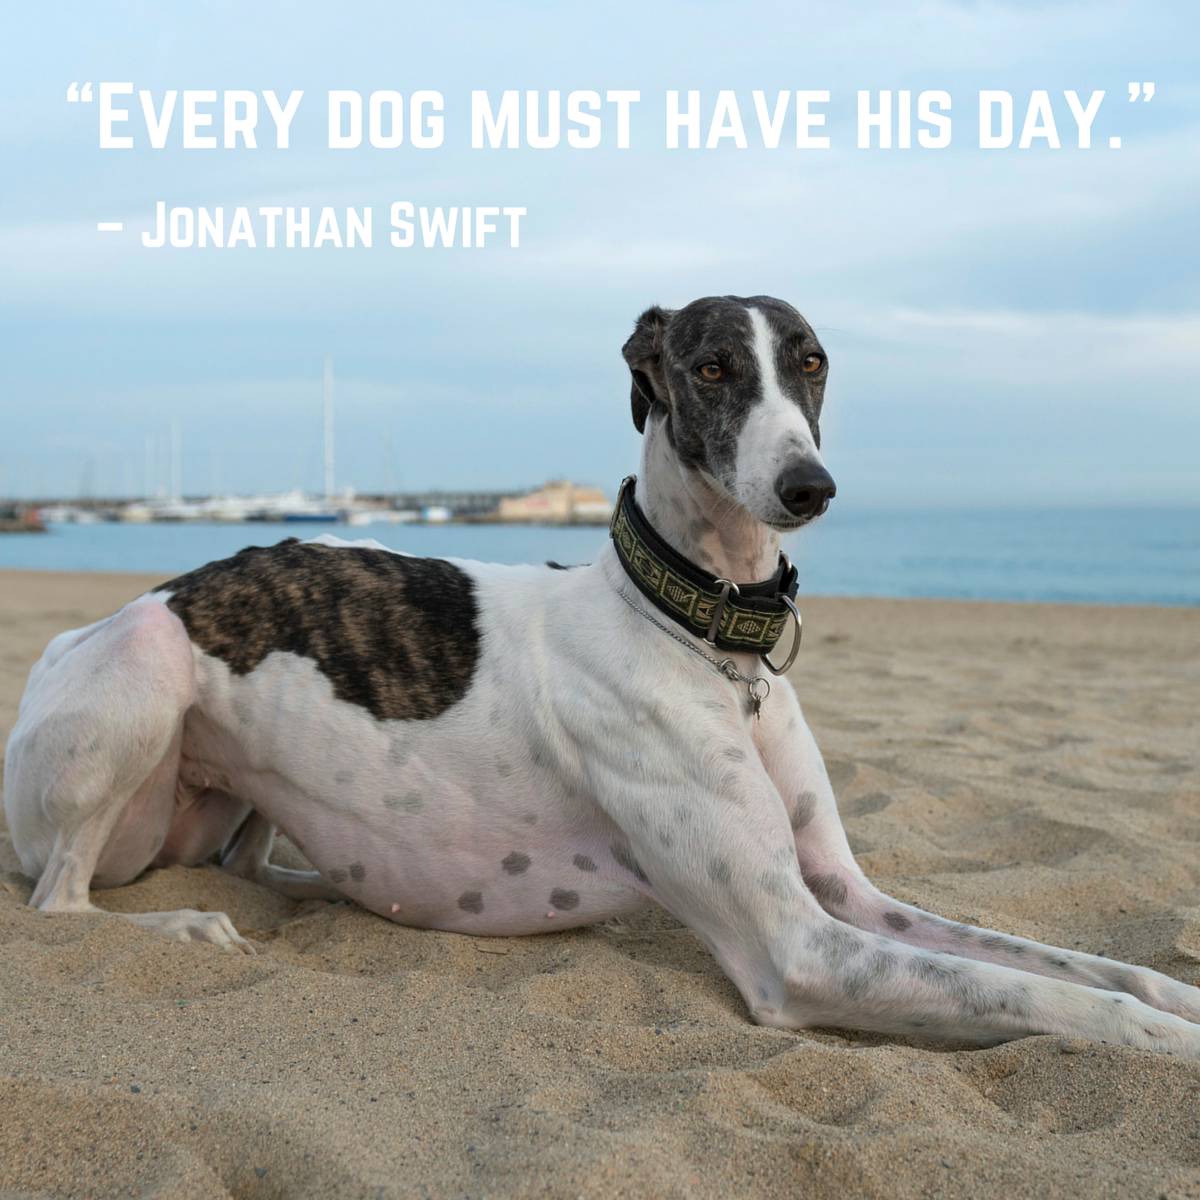 Every dog must have his day